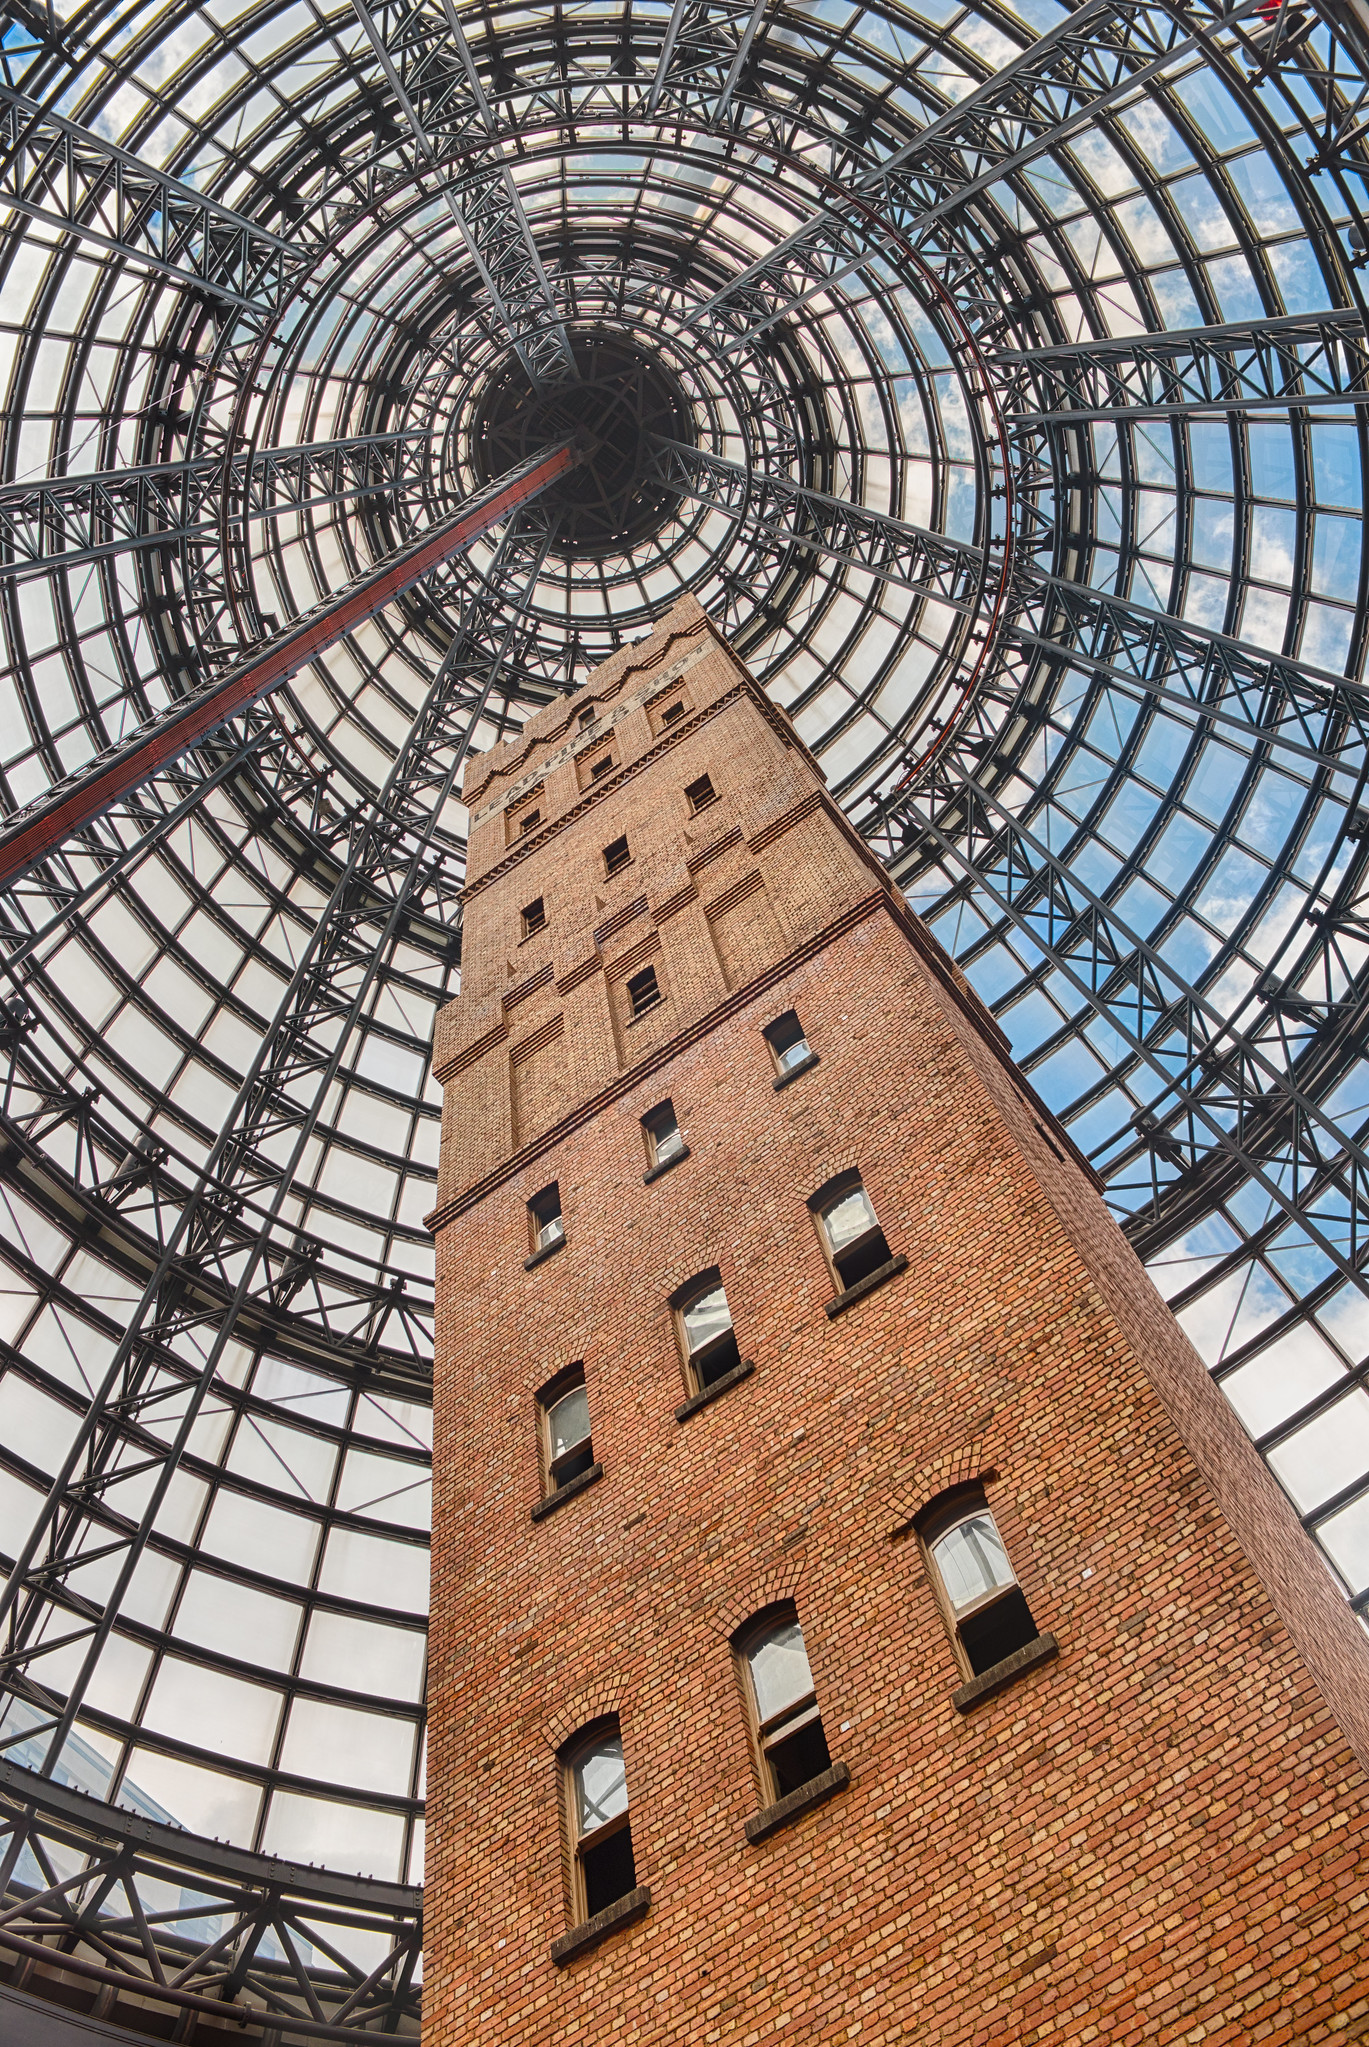 Coop's Shot Tower